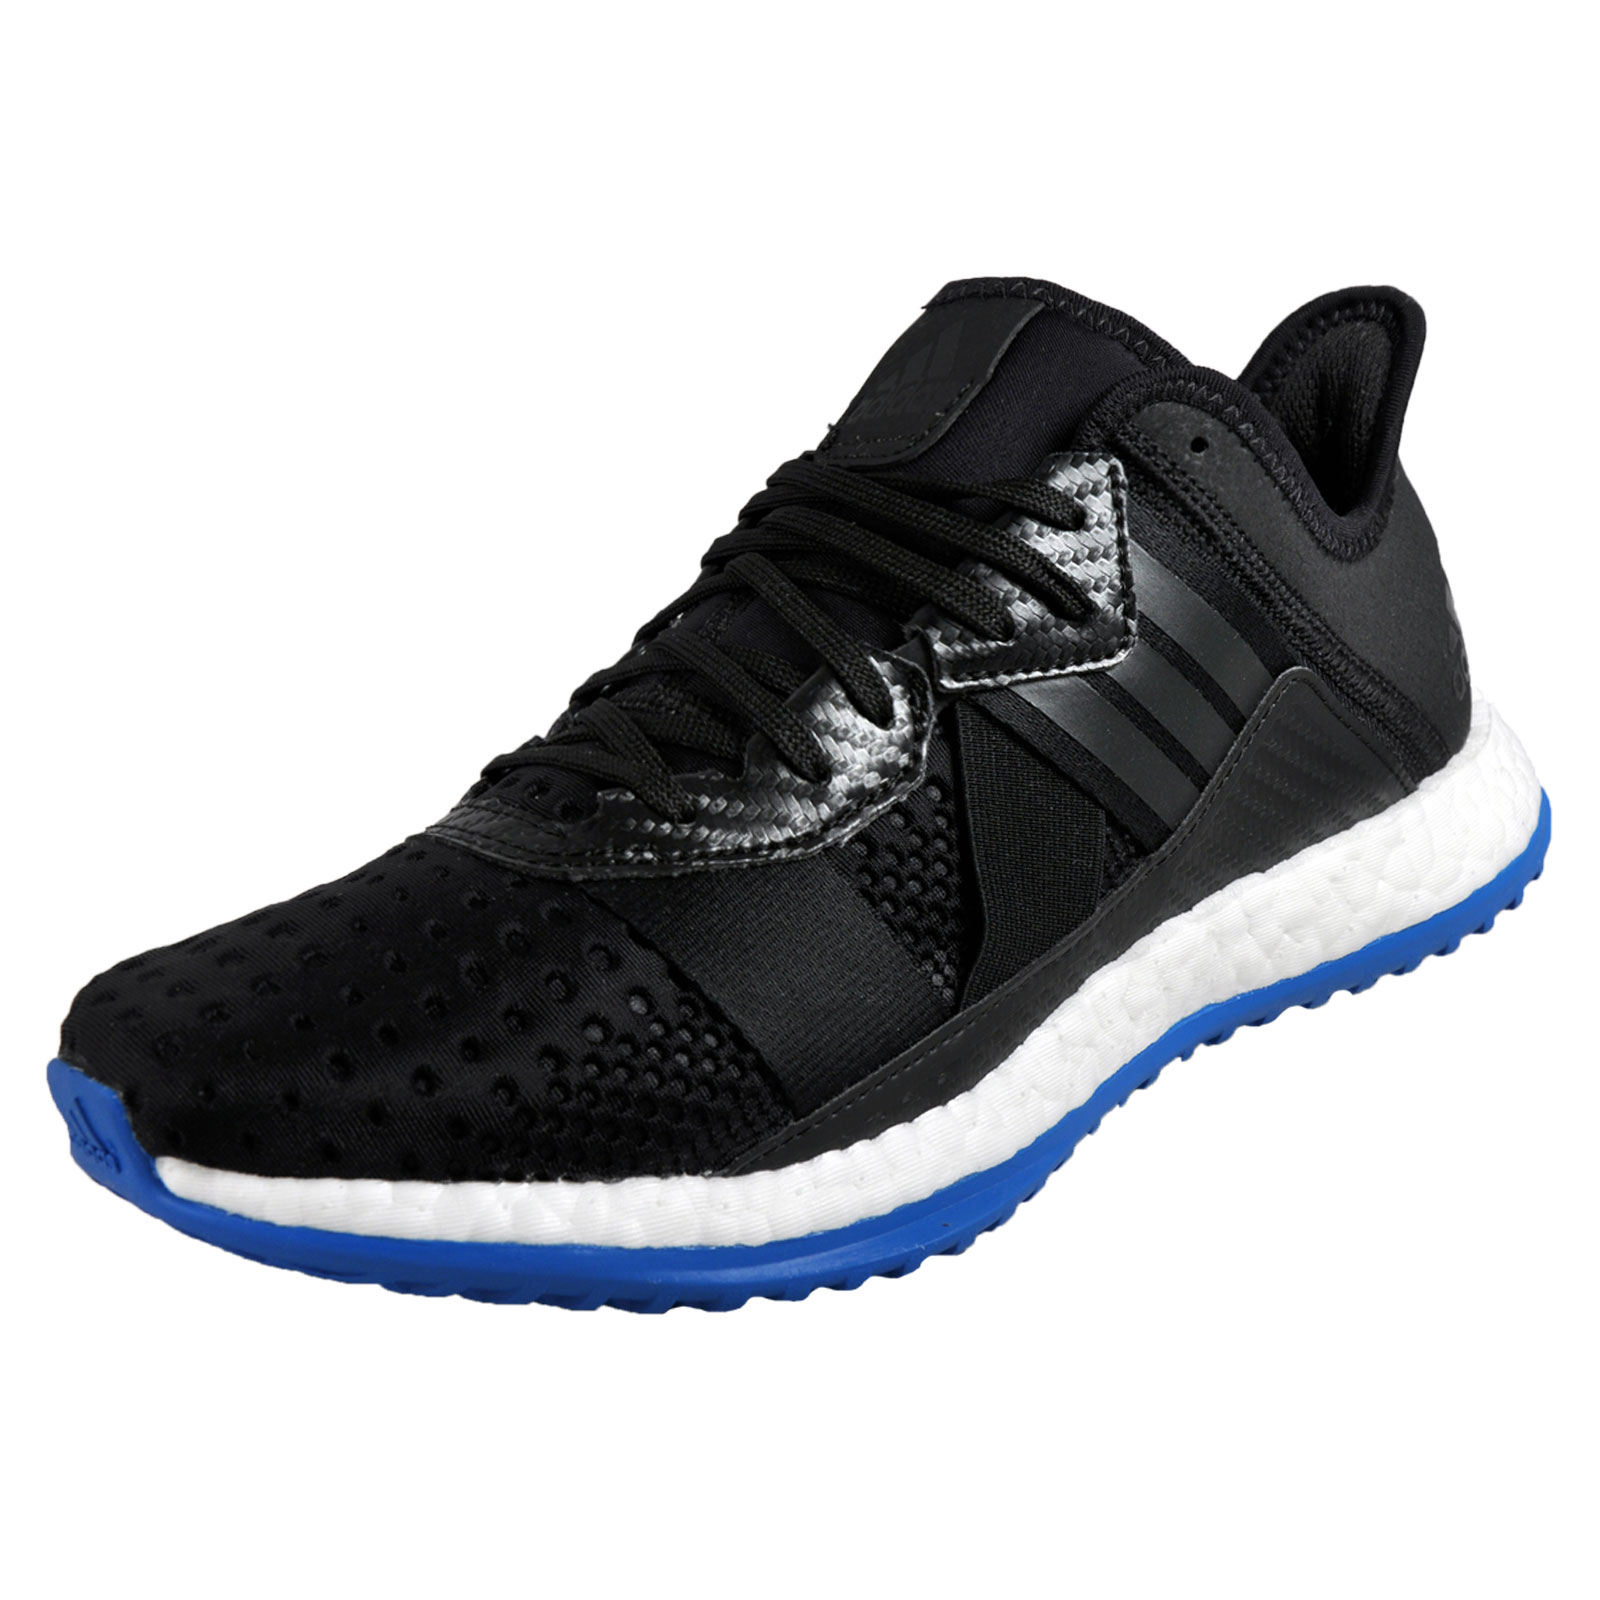 436e4c028f0 Details about Adidas Pureboost ZG Mens Running Shoes Fitness Gym Trainers  Black